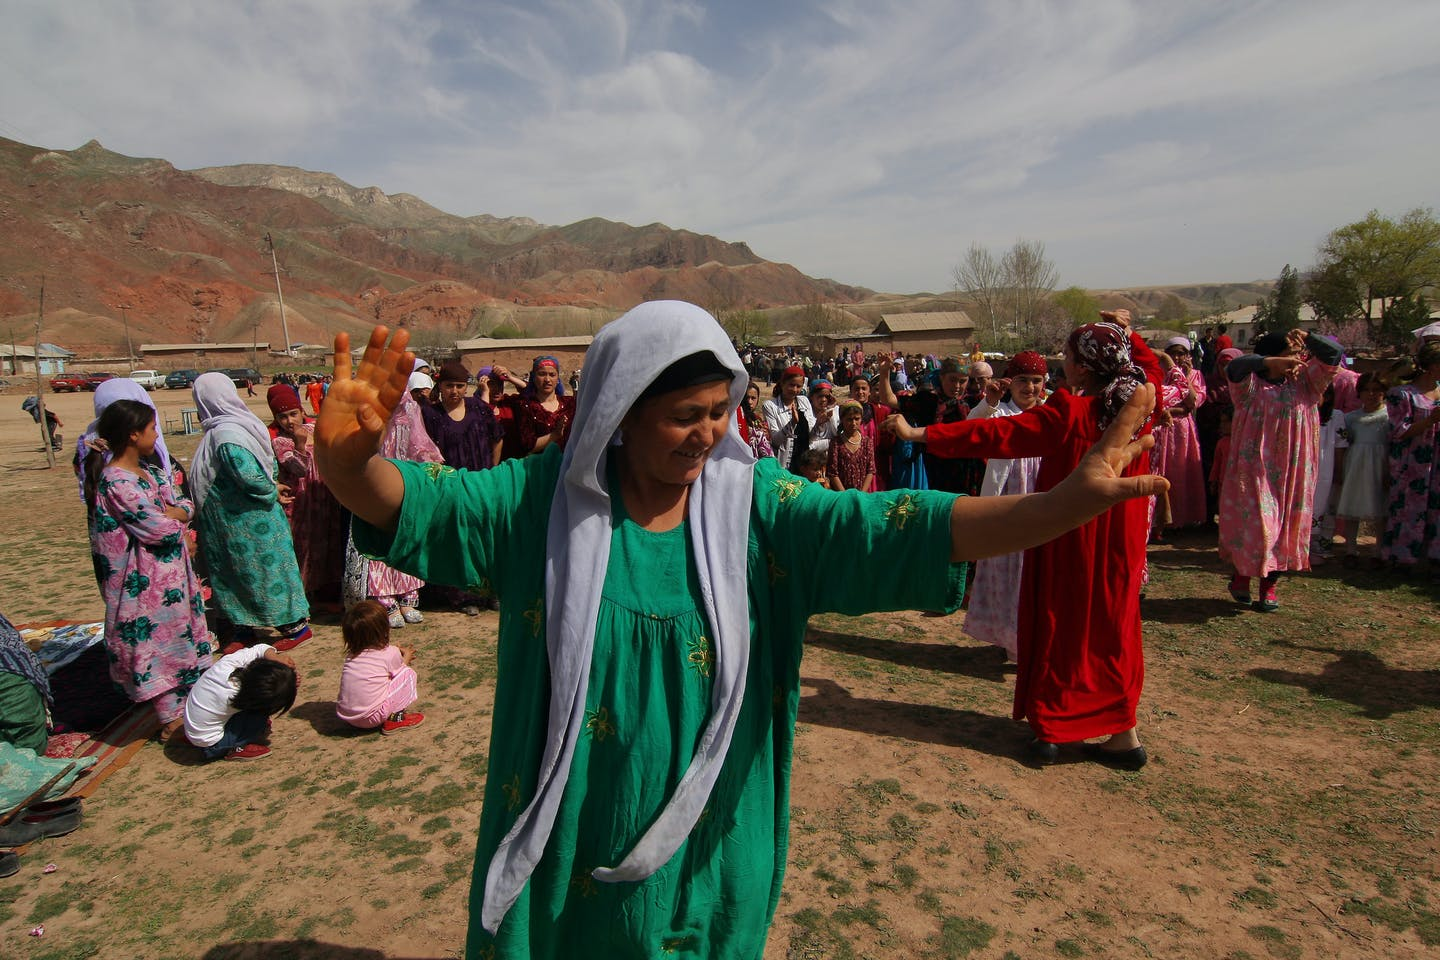 Women dance during the Navruz Holiday in Chanori Suhta Village in Tajikistan